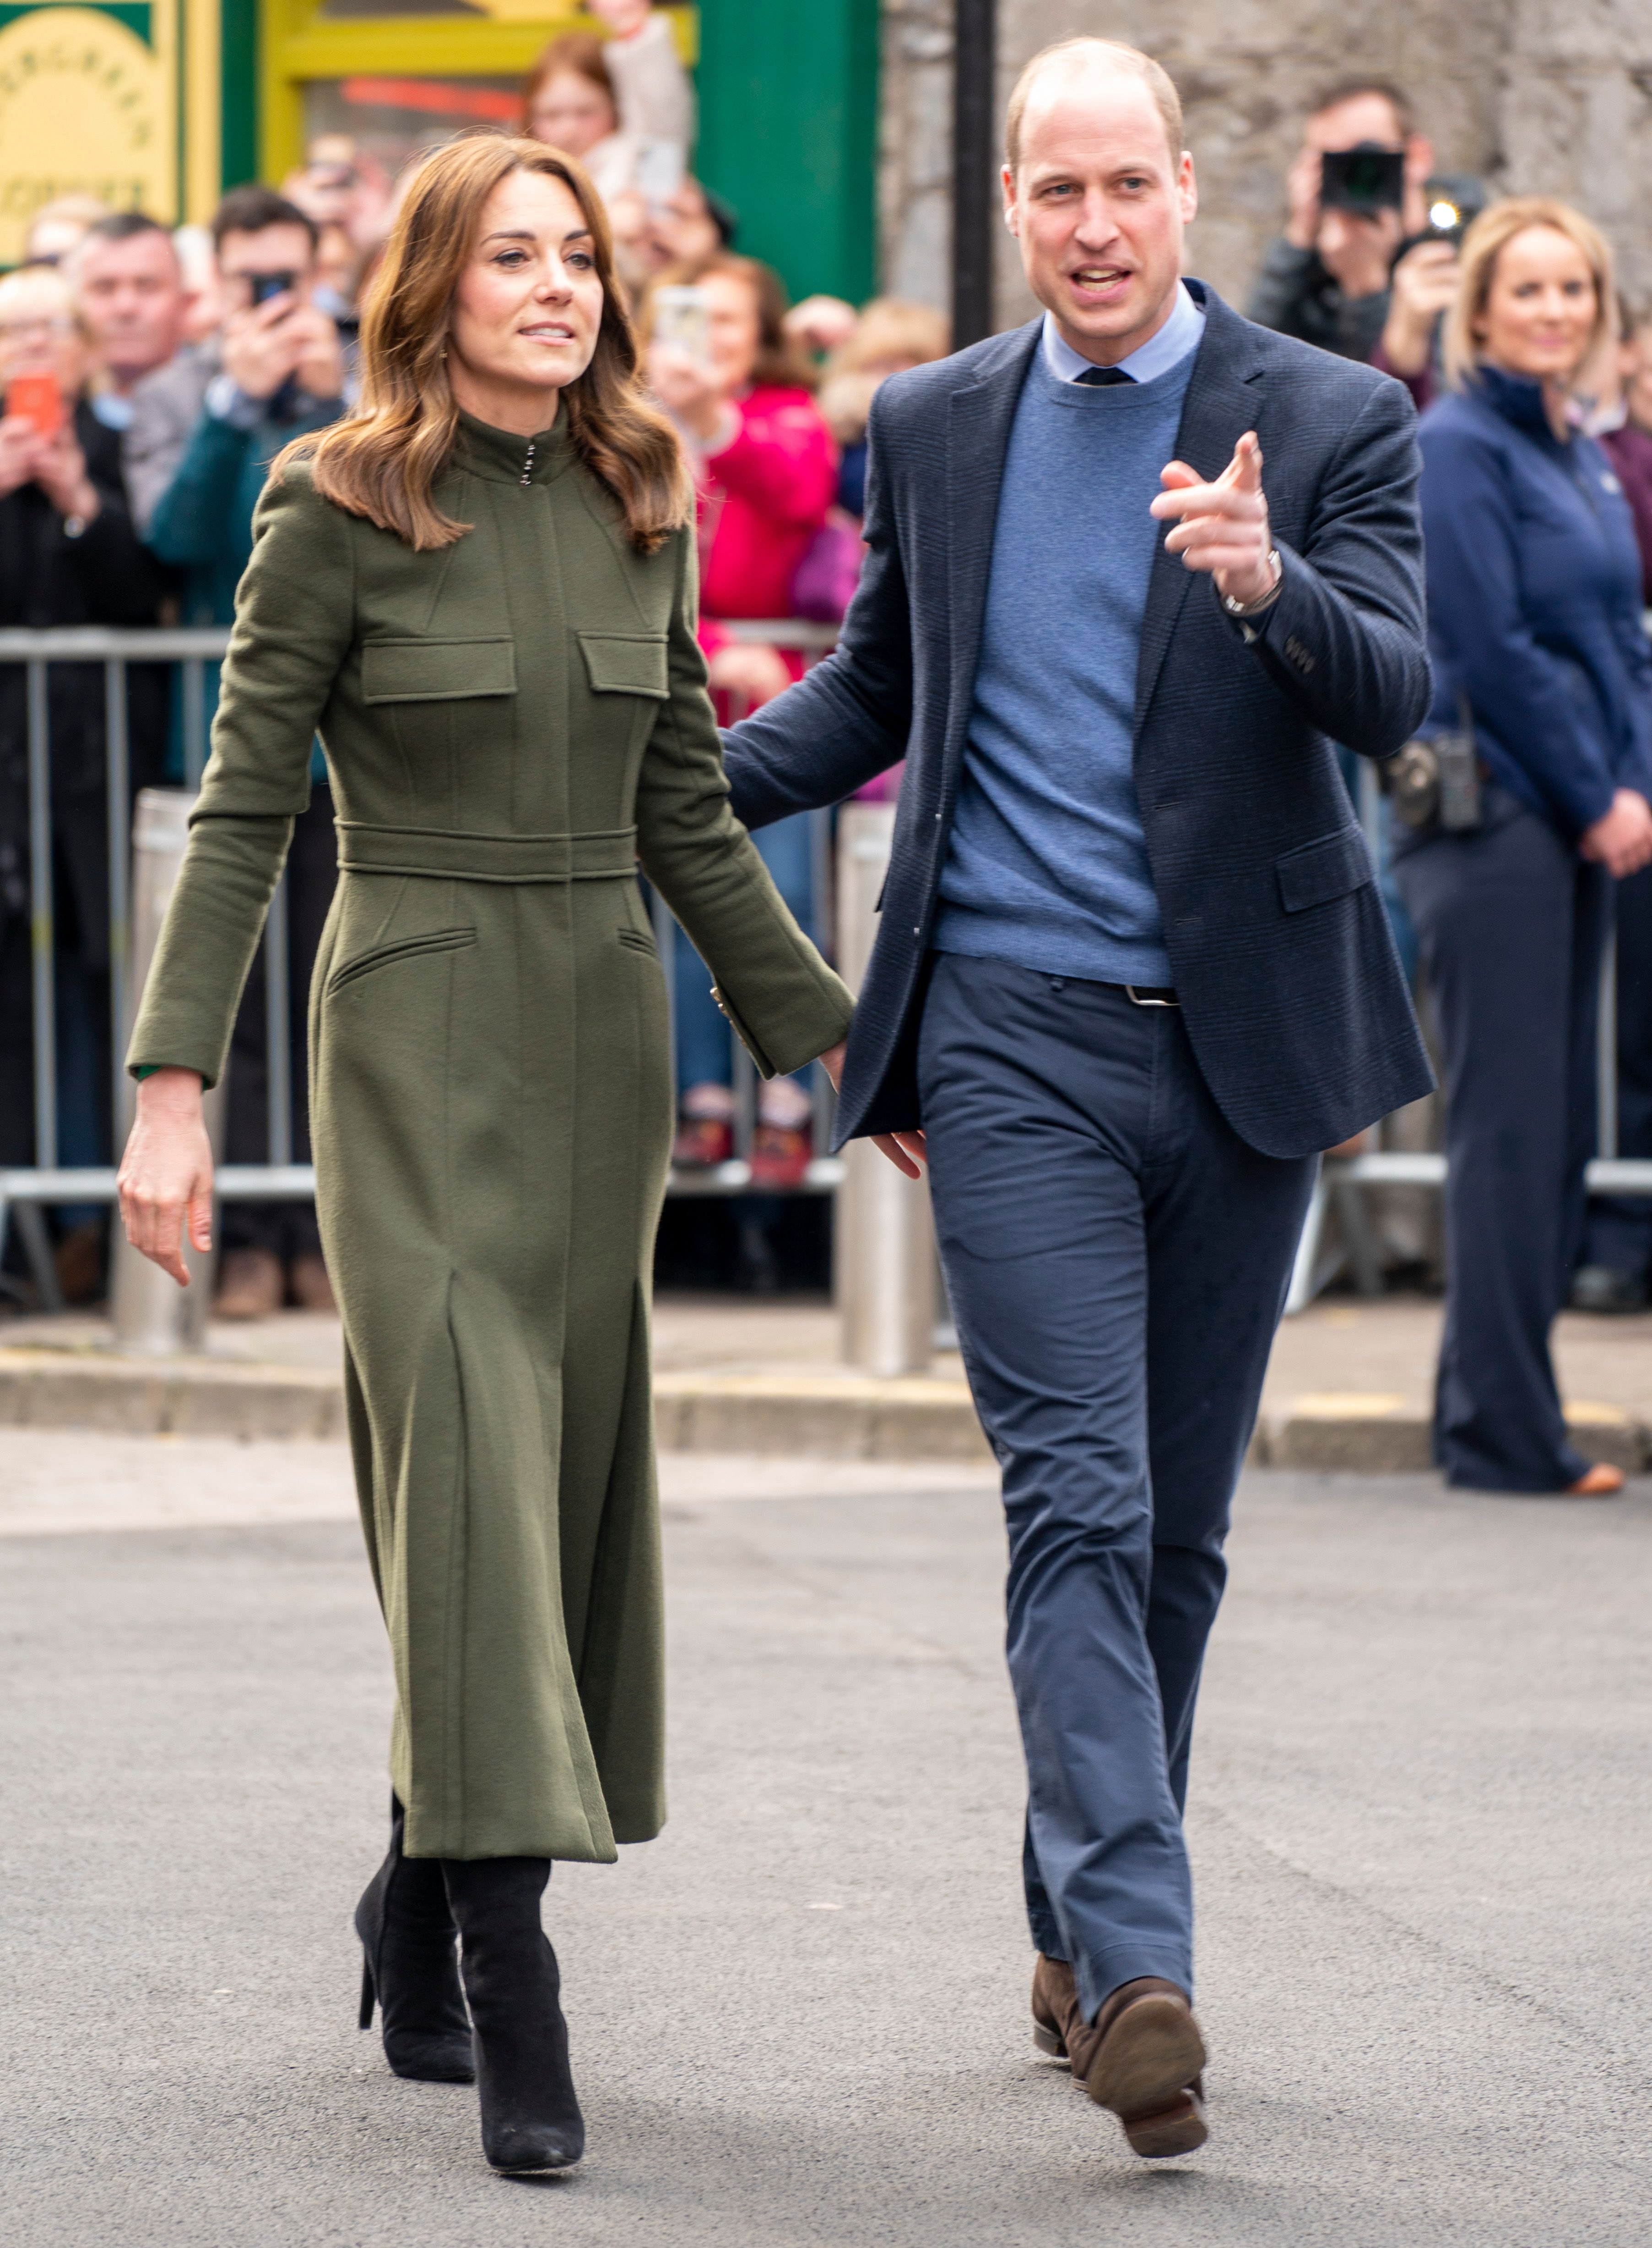 Prince William and Kate Middleton at King Street during day three of their visit to Ireland on March 5, 2020 in Galway, Ireland. | Source: Getty Images